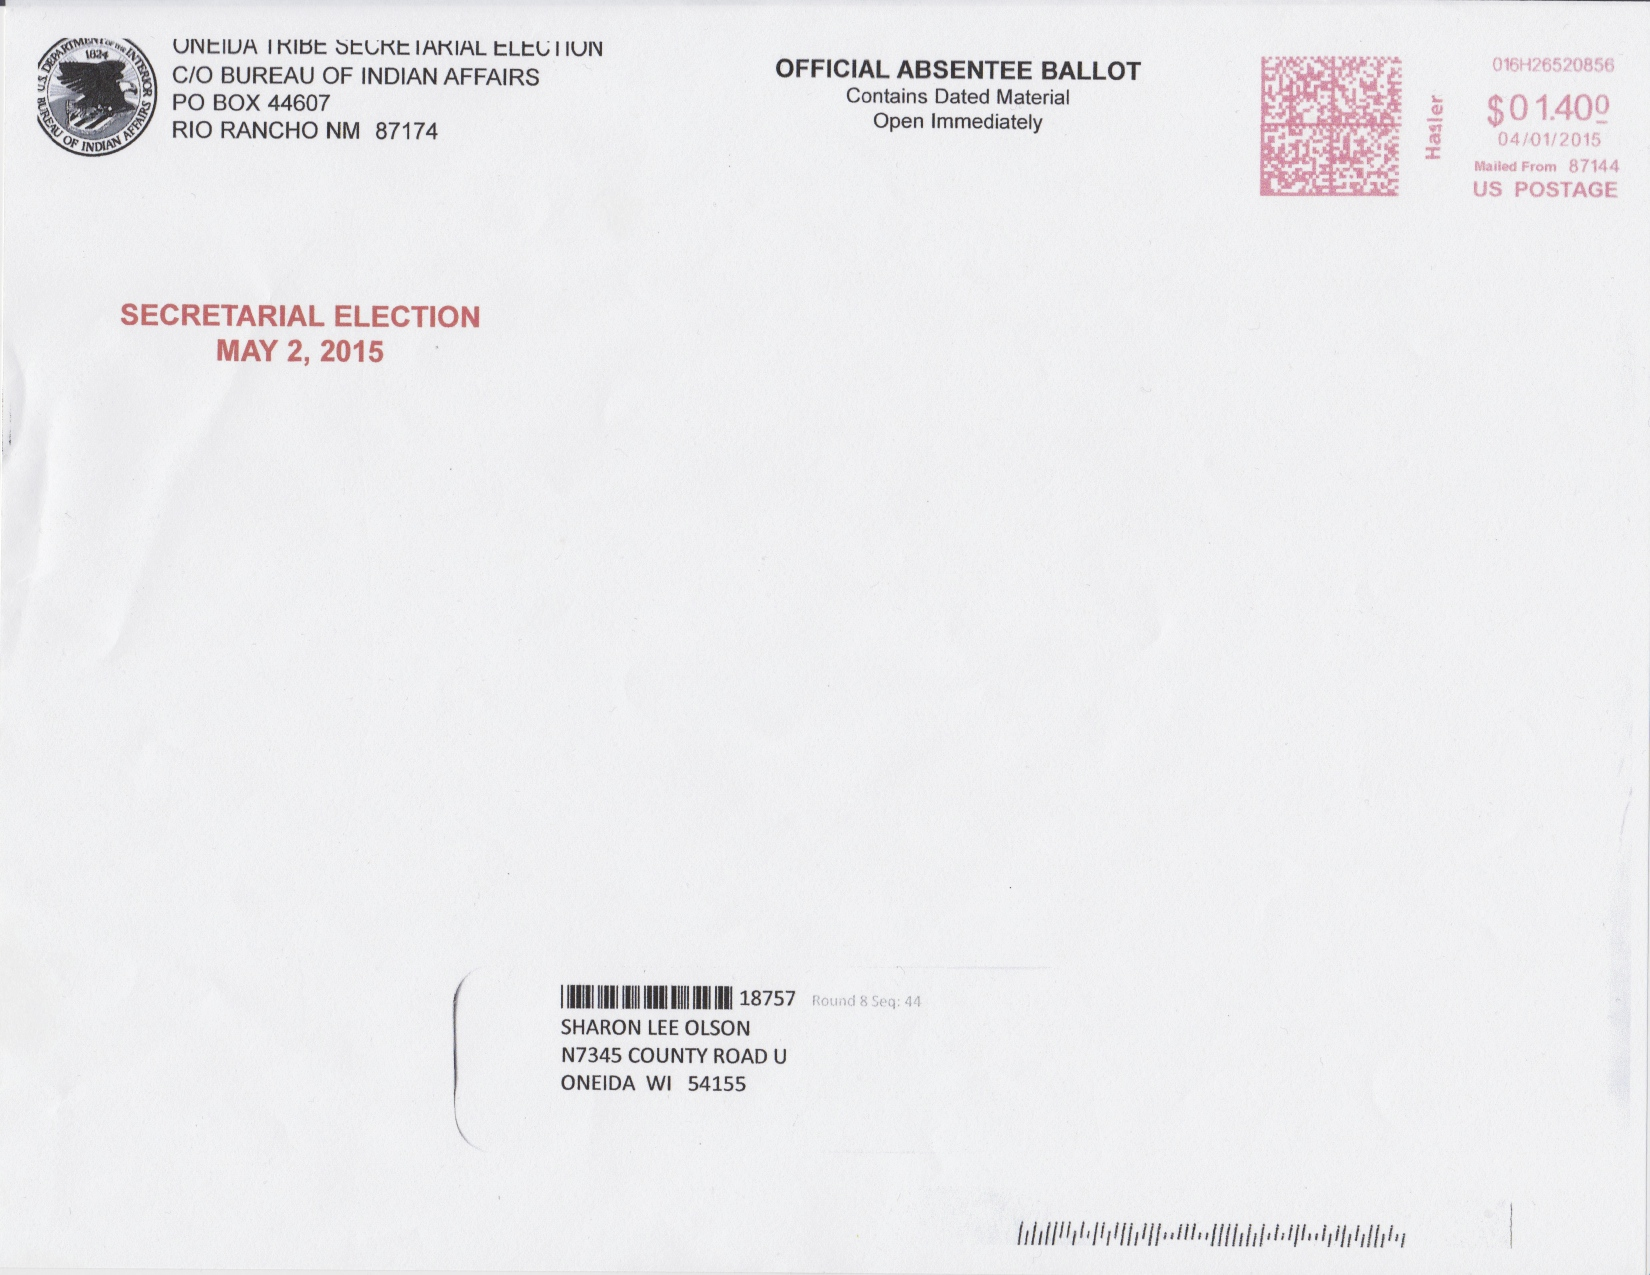 Absentee Ballot Illegally Sent to Oneida Eye